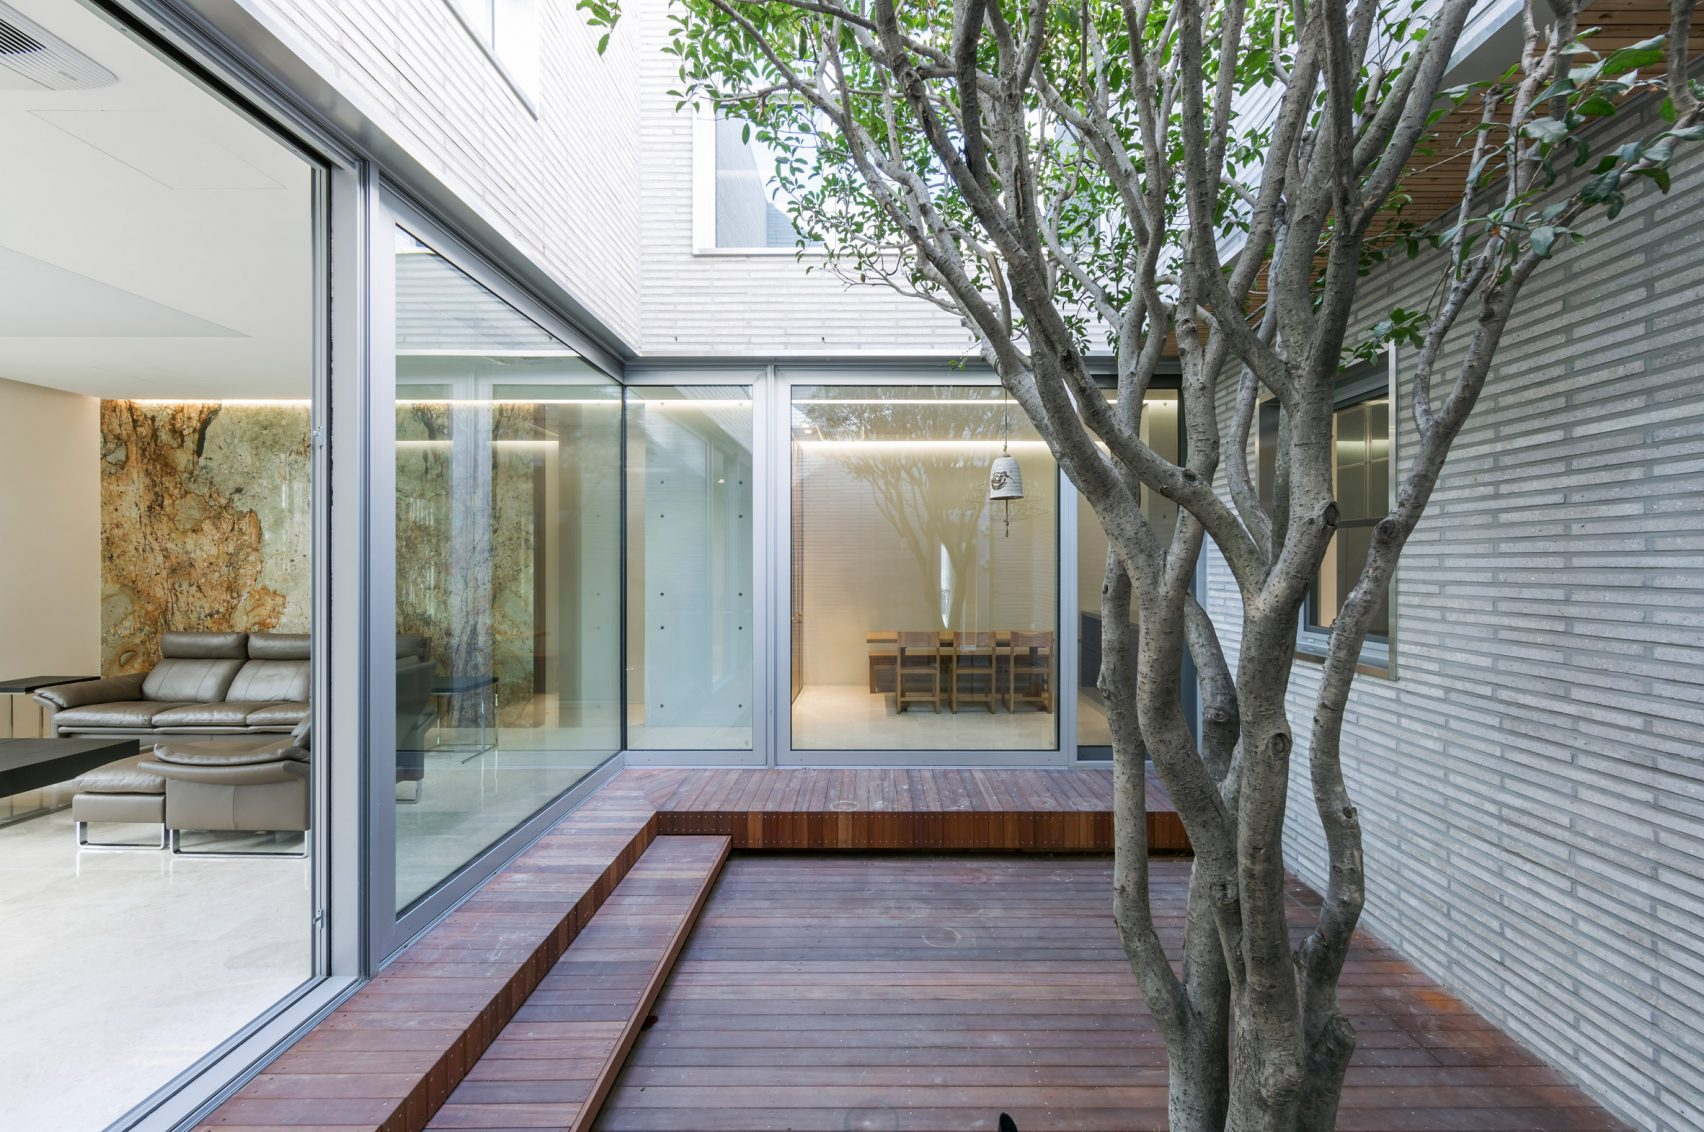 steel-grove-augmented-reality-architecture-residential-south-korea-courtyards-steel_dezeen_2364_col_28-1704x1132.jpg